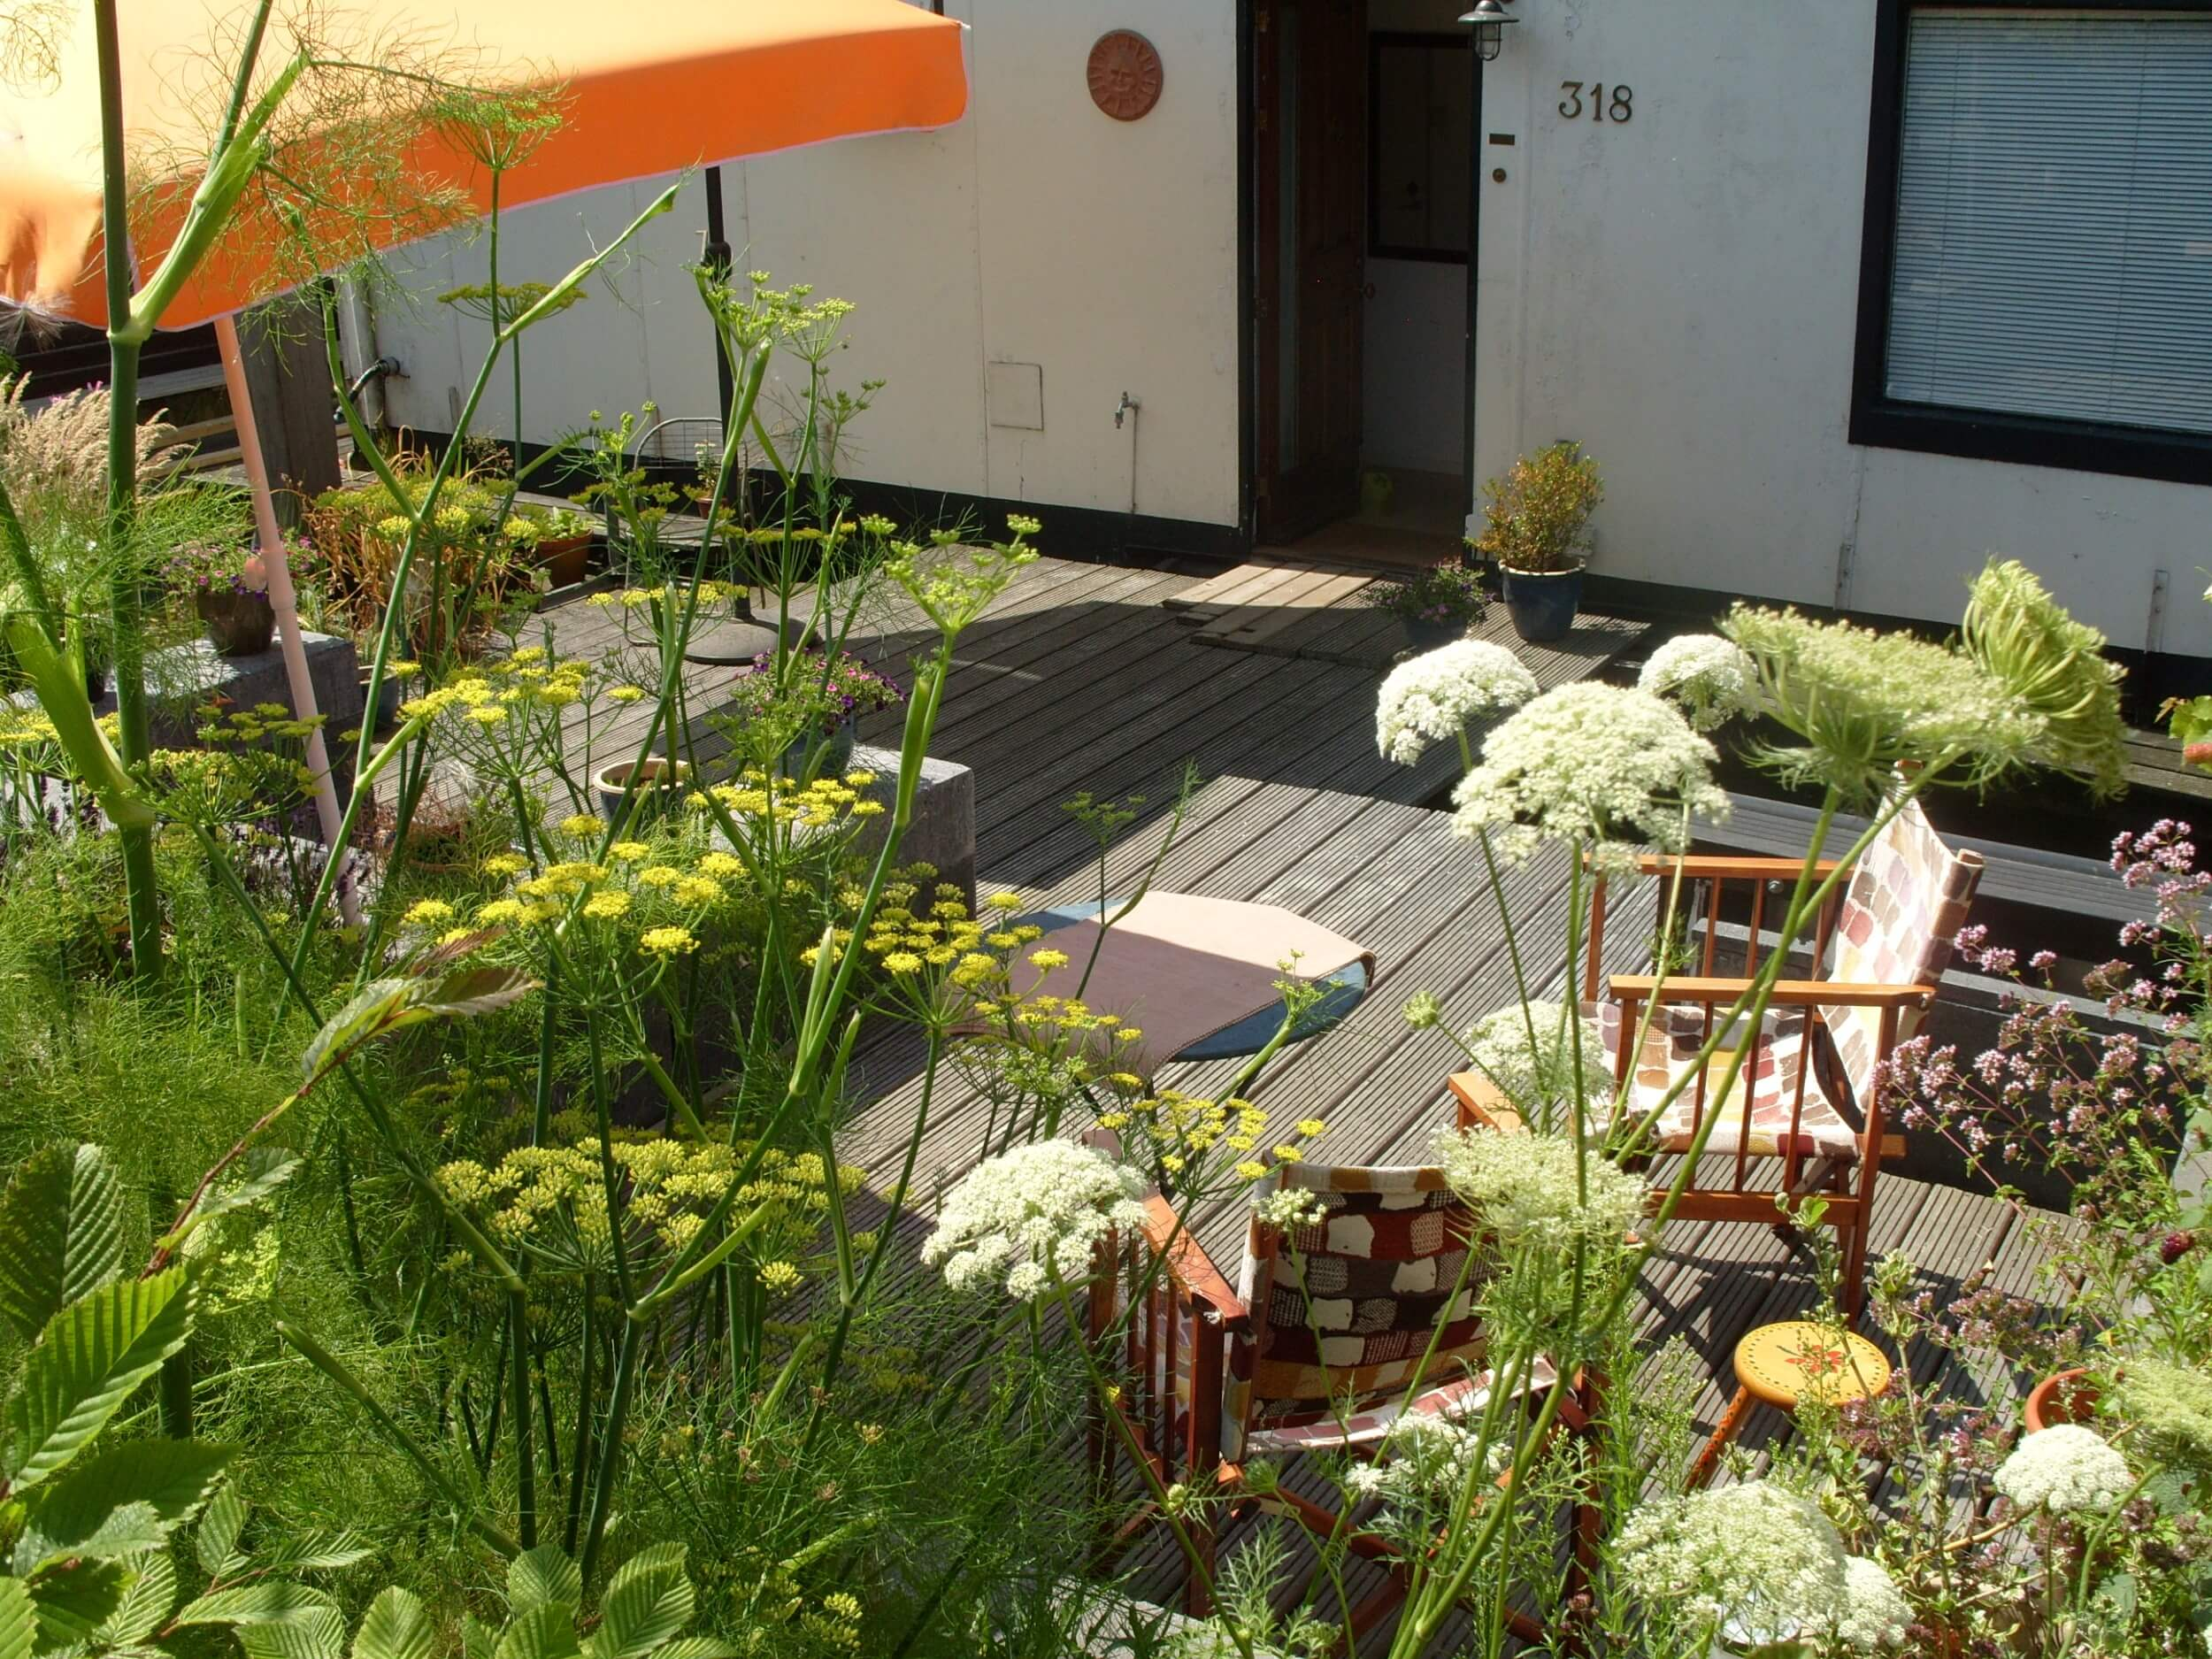 De Tuin - Houseboat Harmony - Bed & Breakfast Utrecht (1)